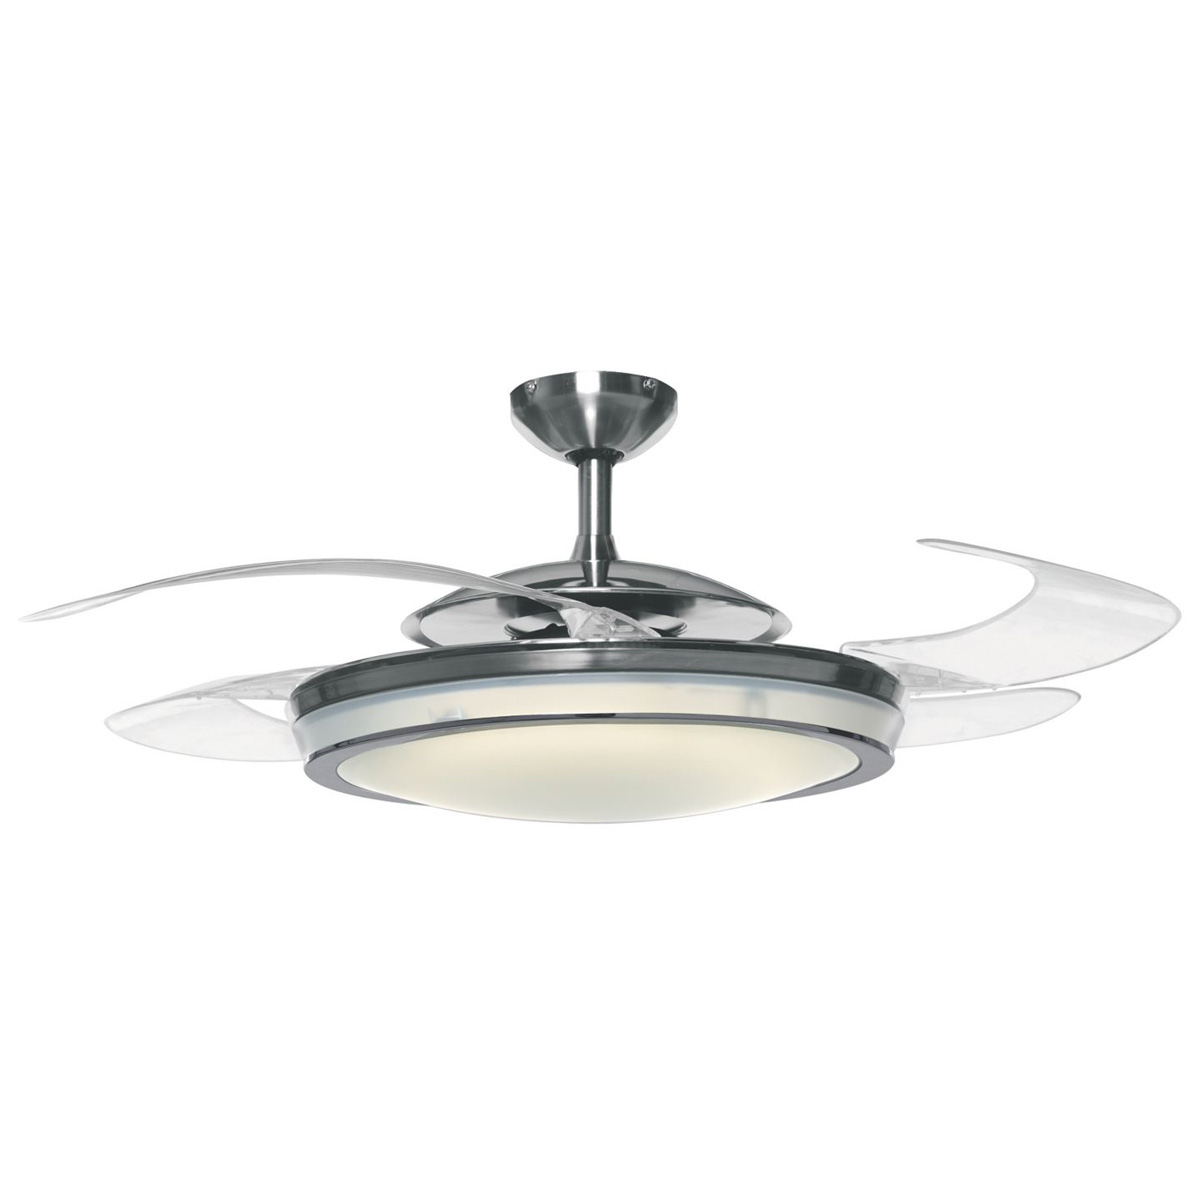 Hunter Fanaway   Retractable Blade Ceiling Fan / Pendant Light